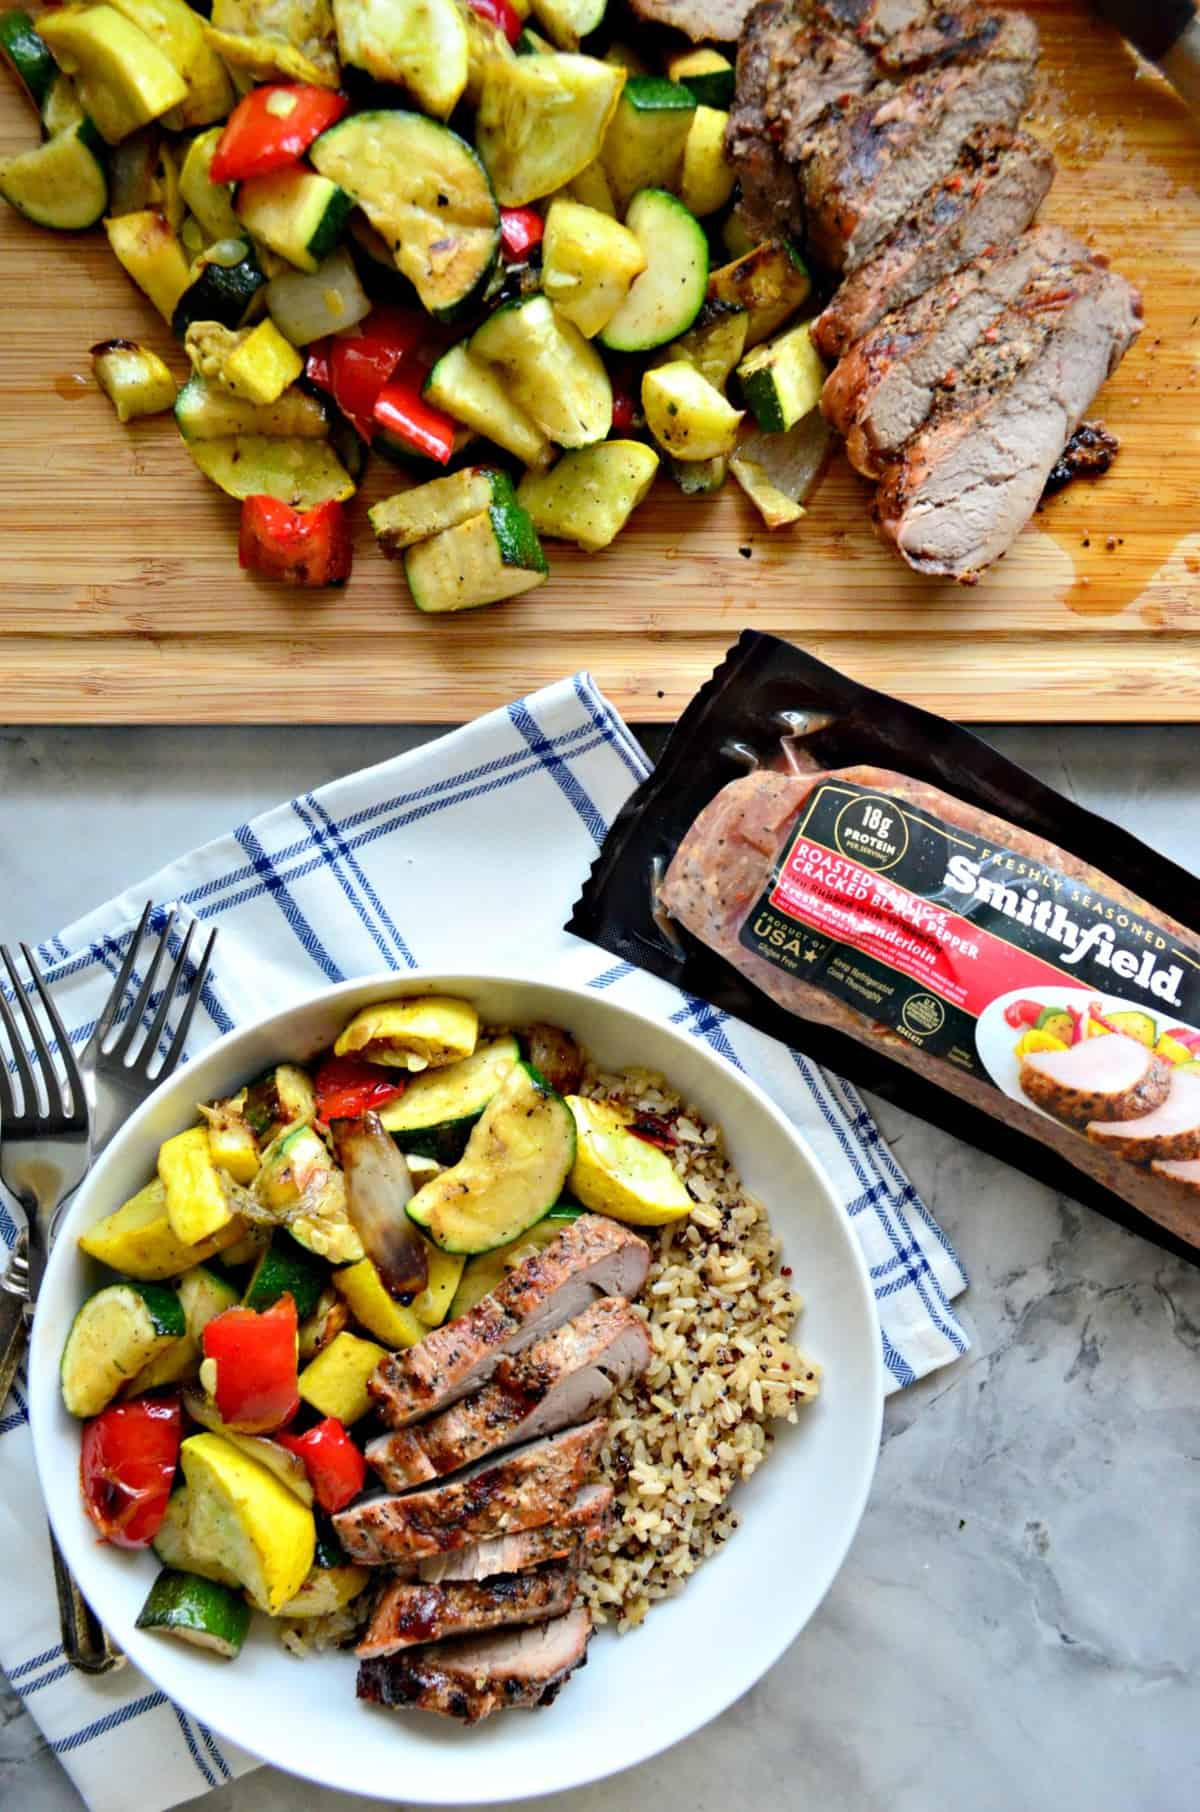 Pork Tenderloin and Brown Rice in a bowl with grilled squash, tomatoes, onions, and with title text.